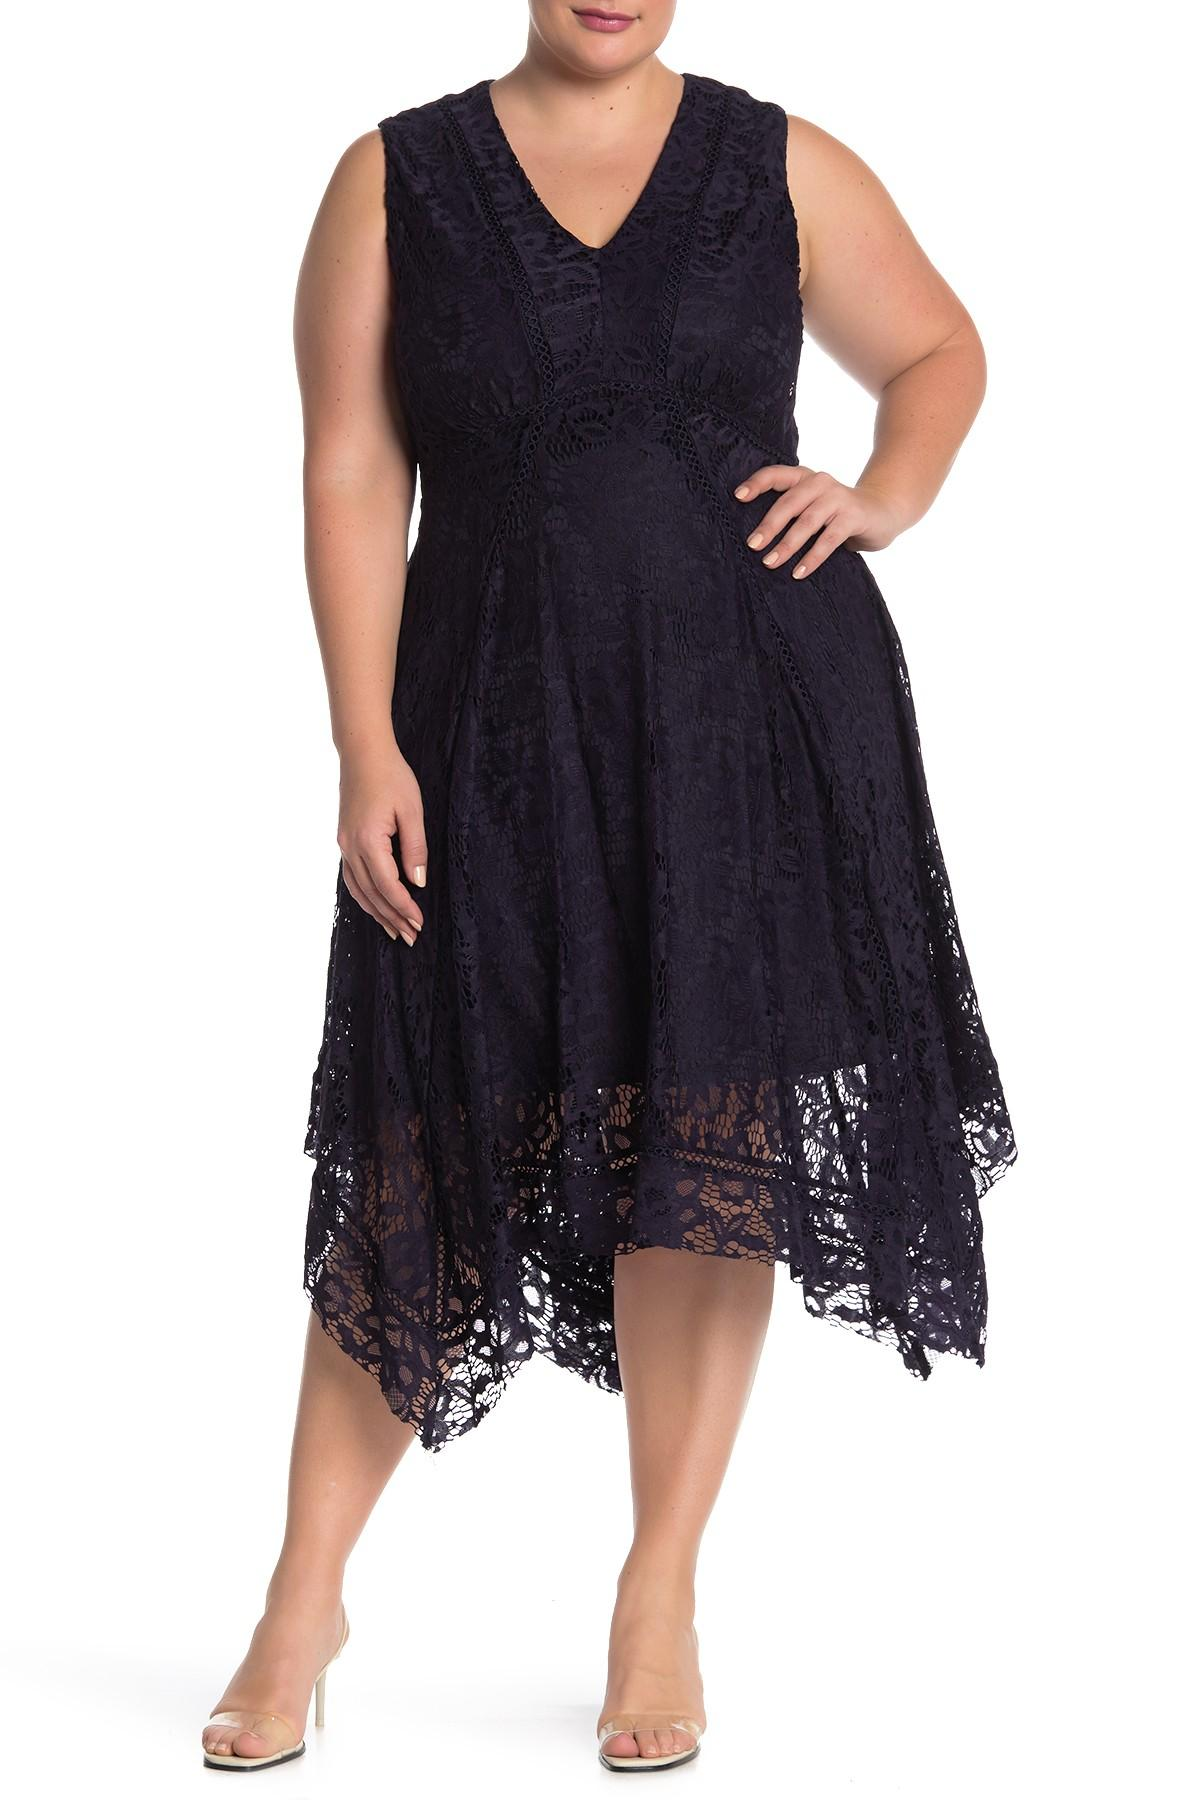 Lyst - Taylor Dresses Floral Lace Sleeveless Midi Dress ...